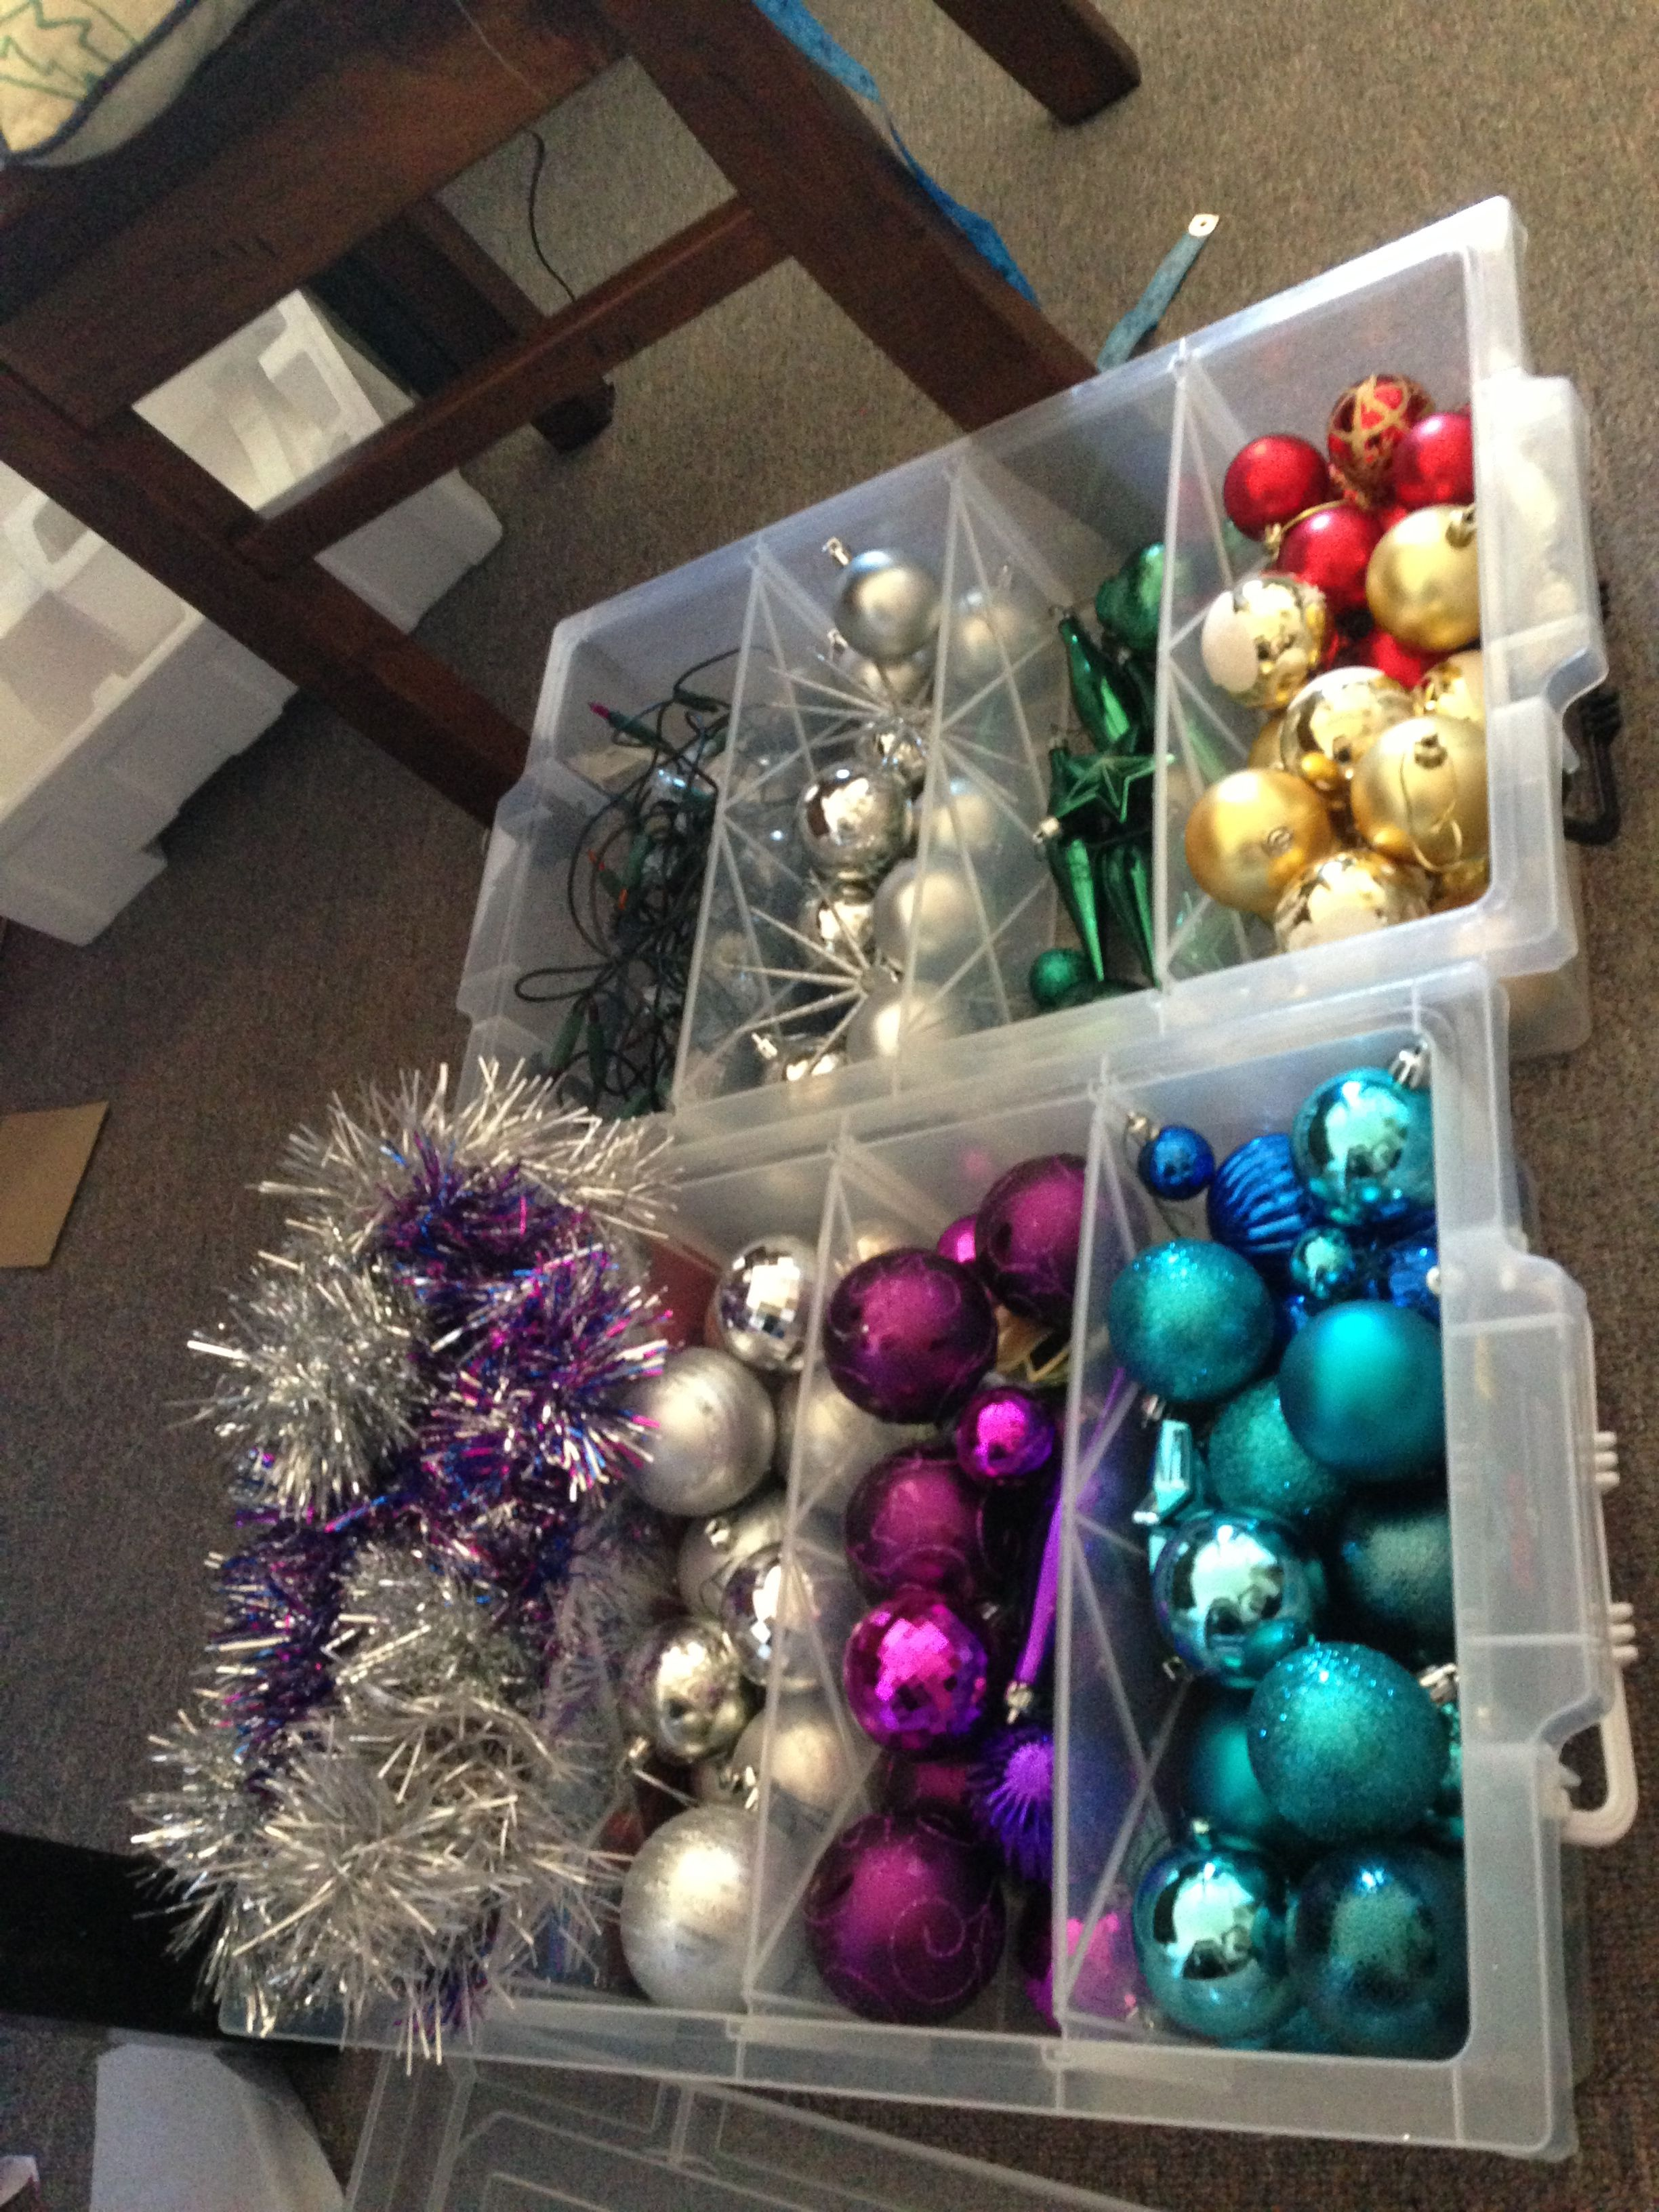 Christmas Decorations Sorted With These Awesome Divided Storage Containers